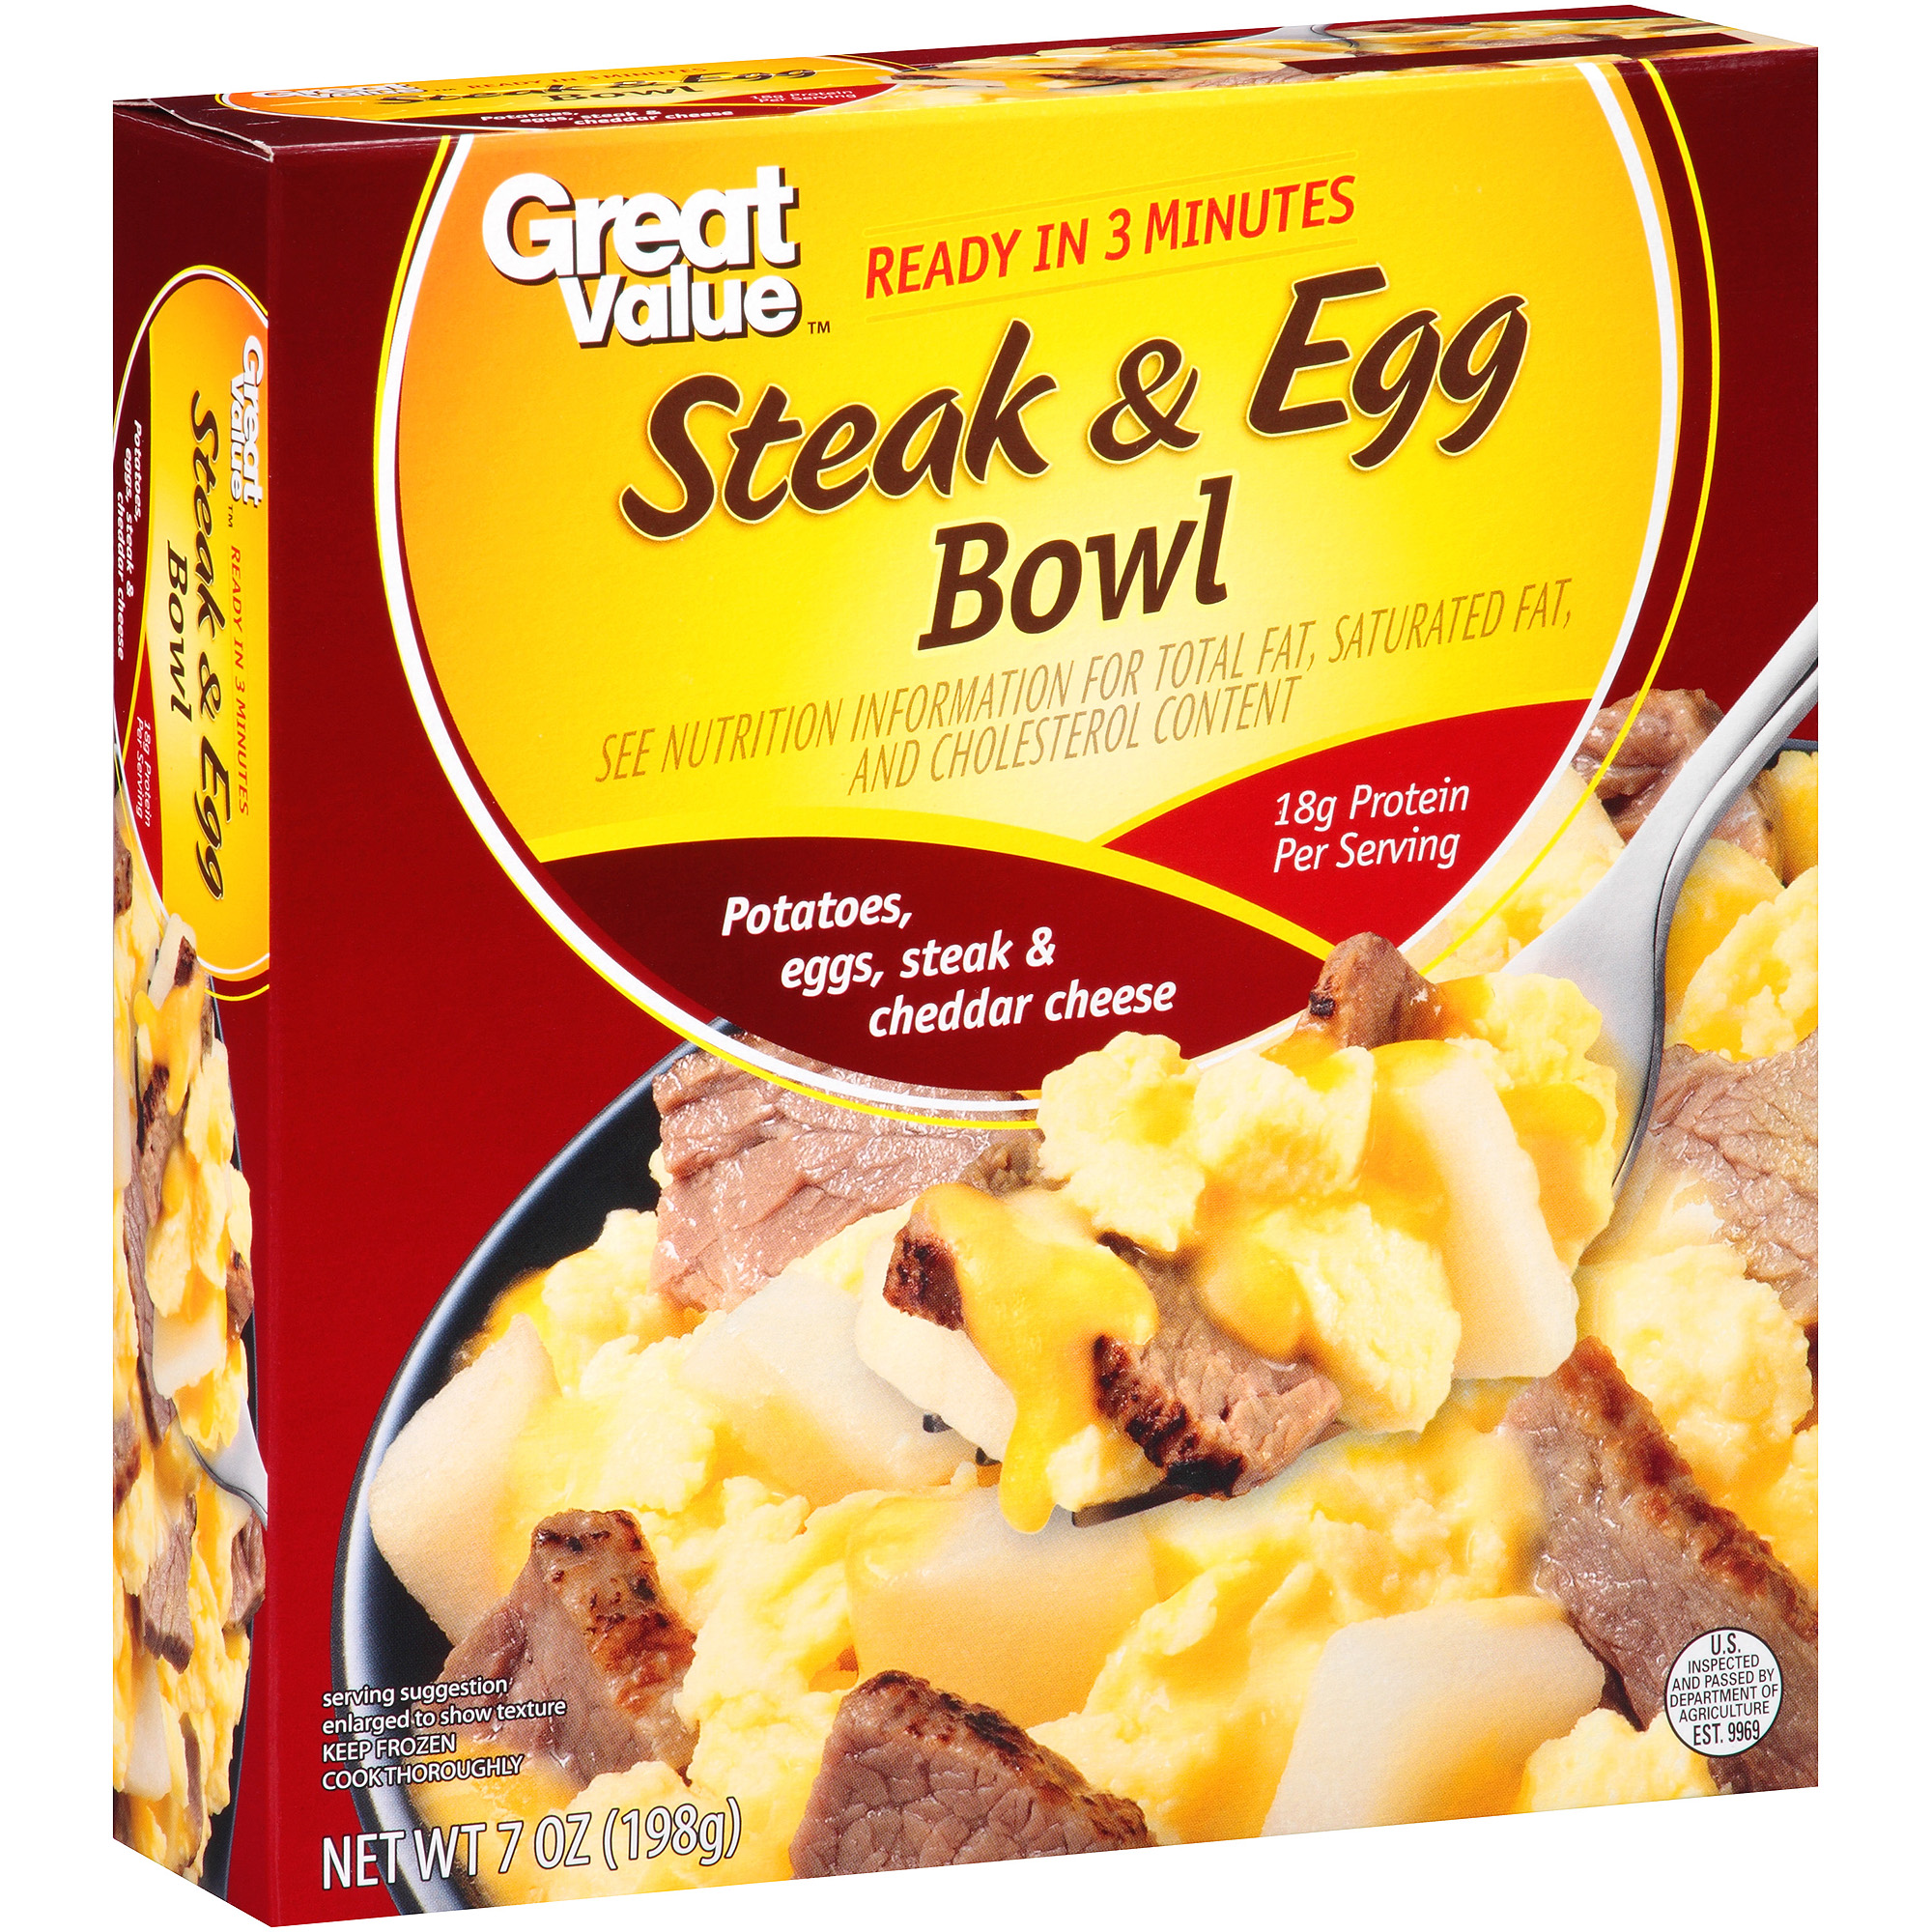 Great Value Steak & Egg Bowl, 7 oz